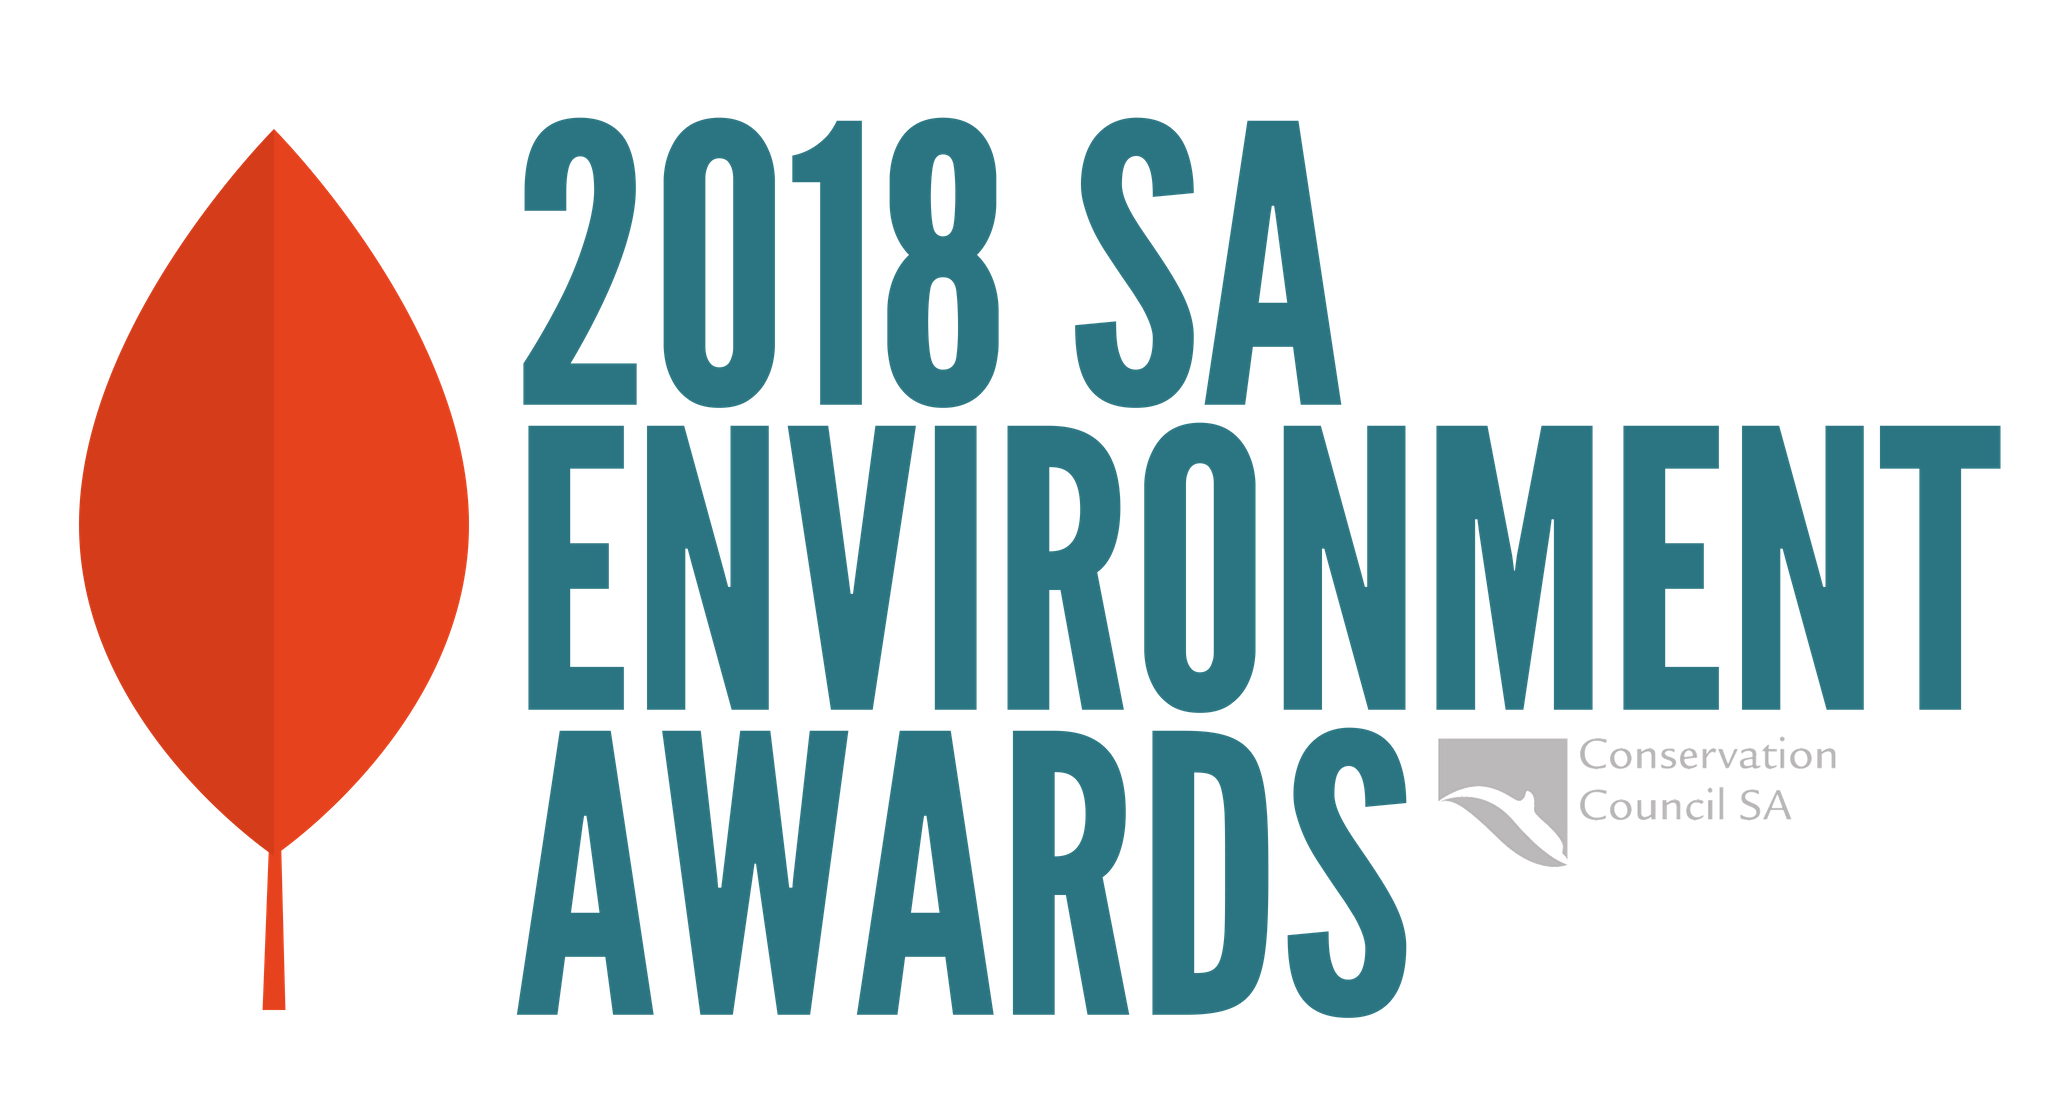 LOGO_2018_SA_Environment_Awards-1.png